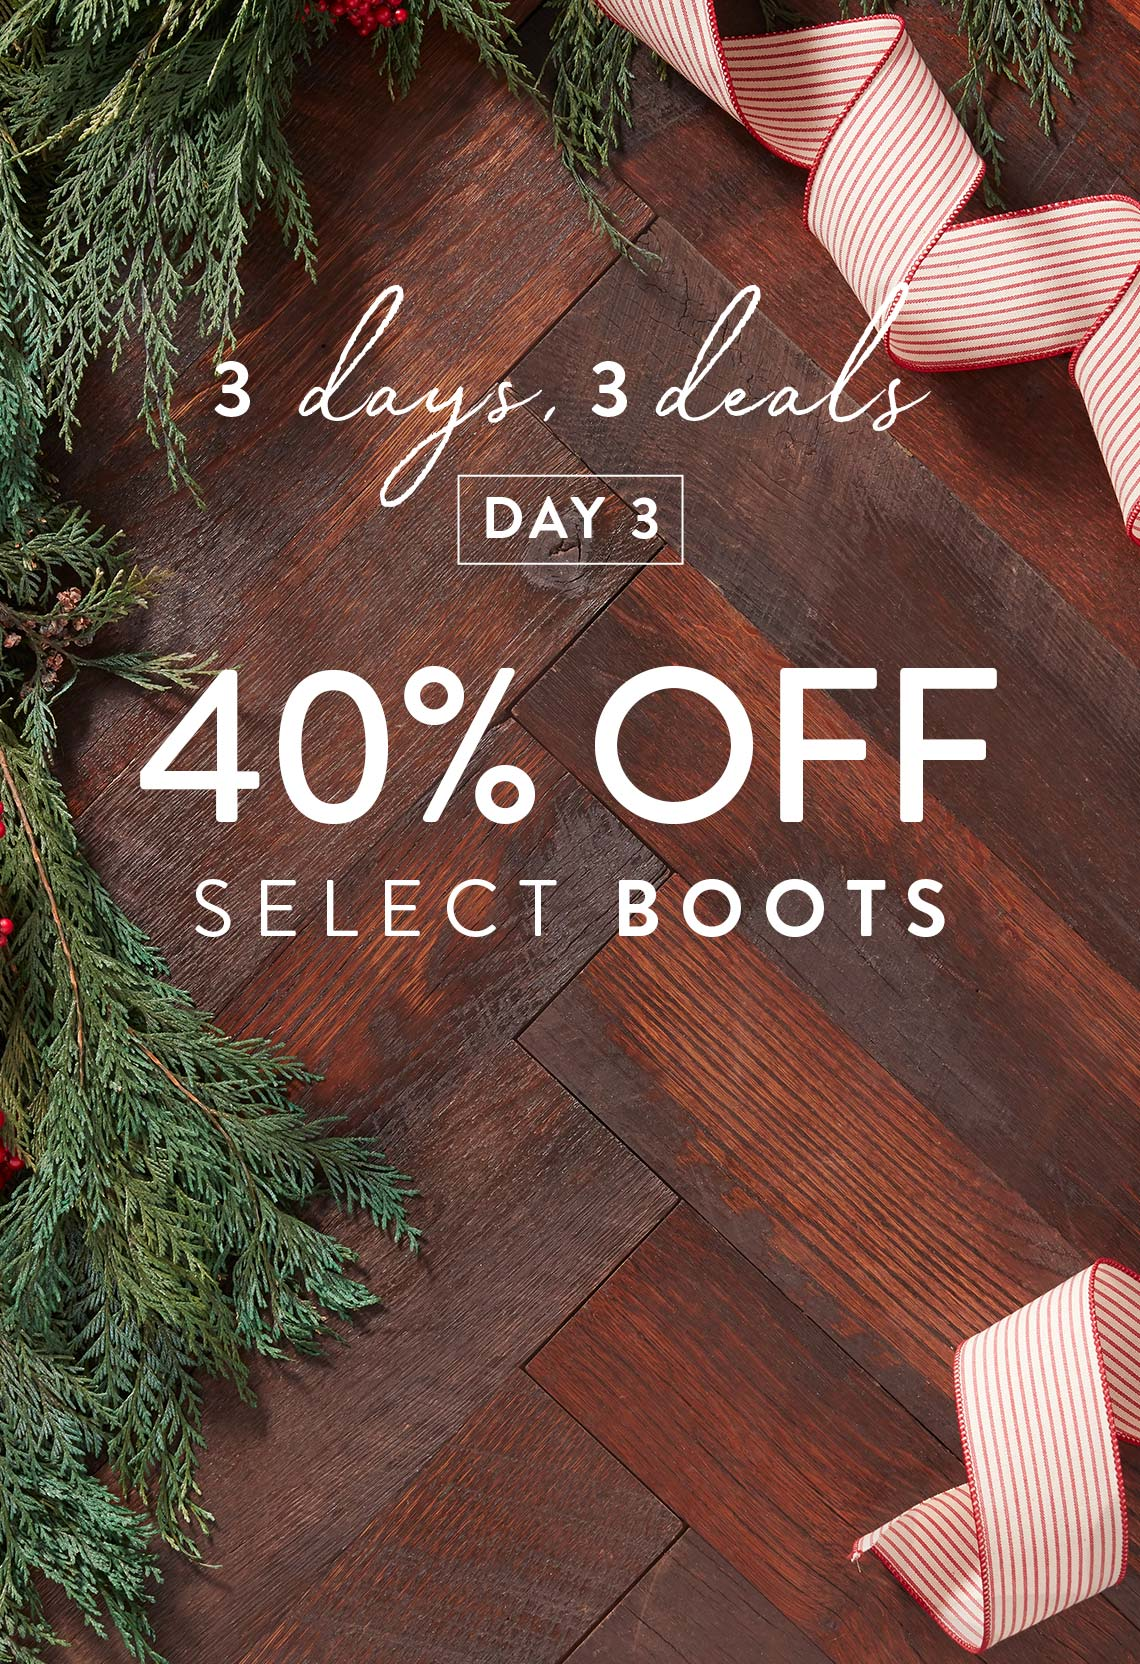 3 days, 3 deals 40% Off Select Boots.